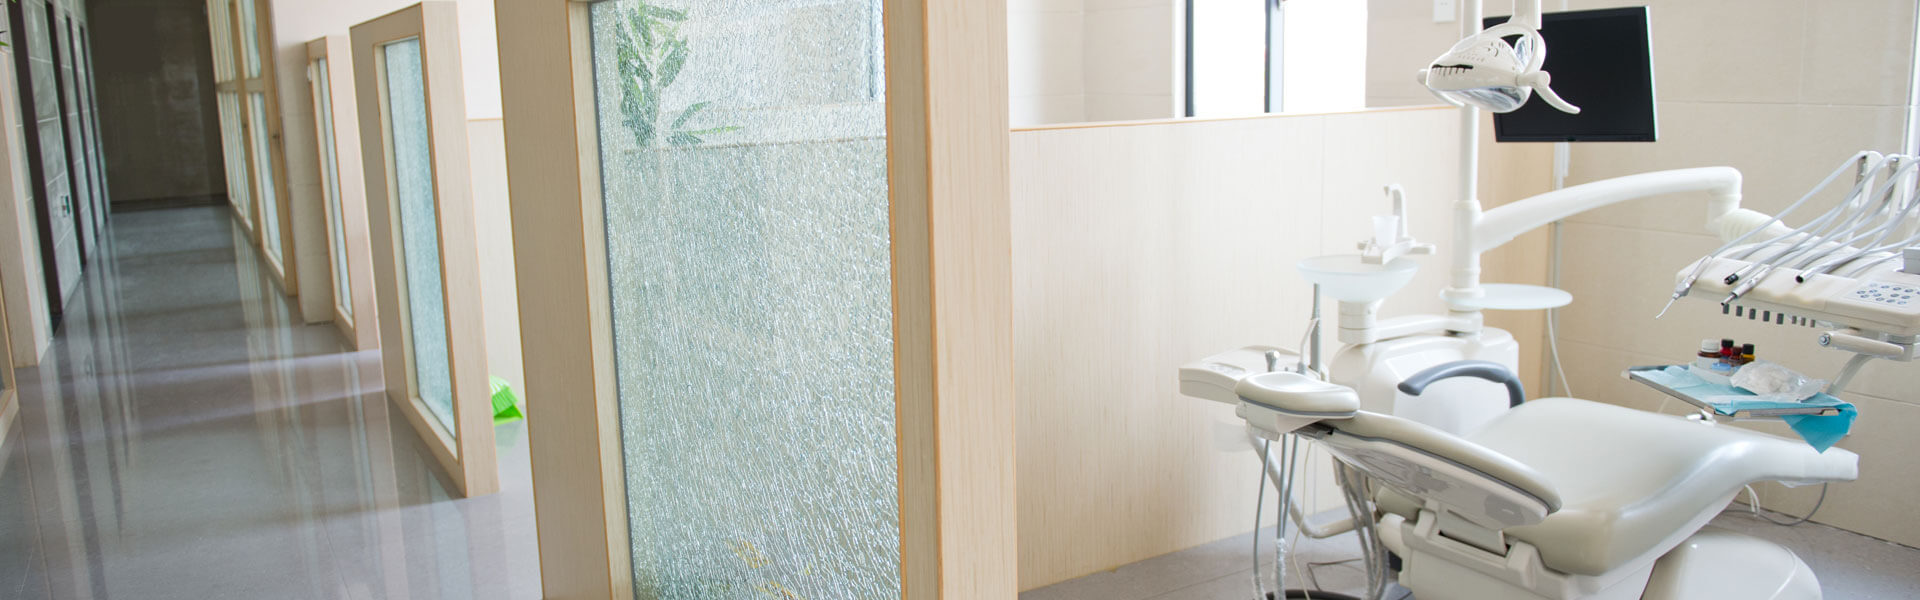 Dental Office Remodeling: 4 Things to Consider